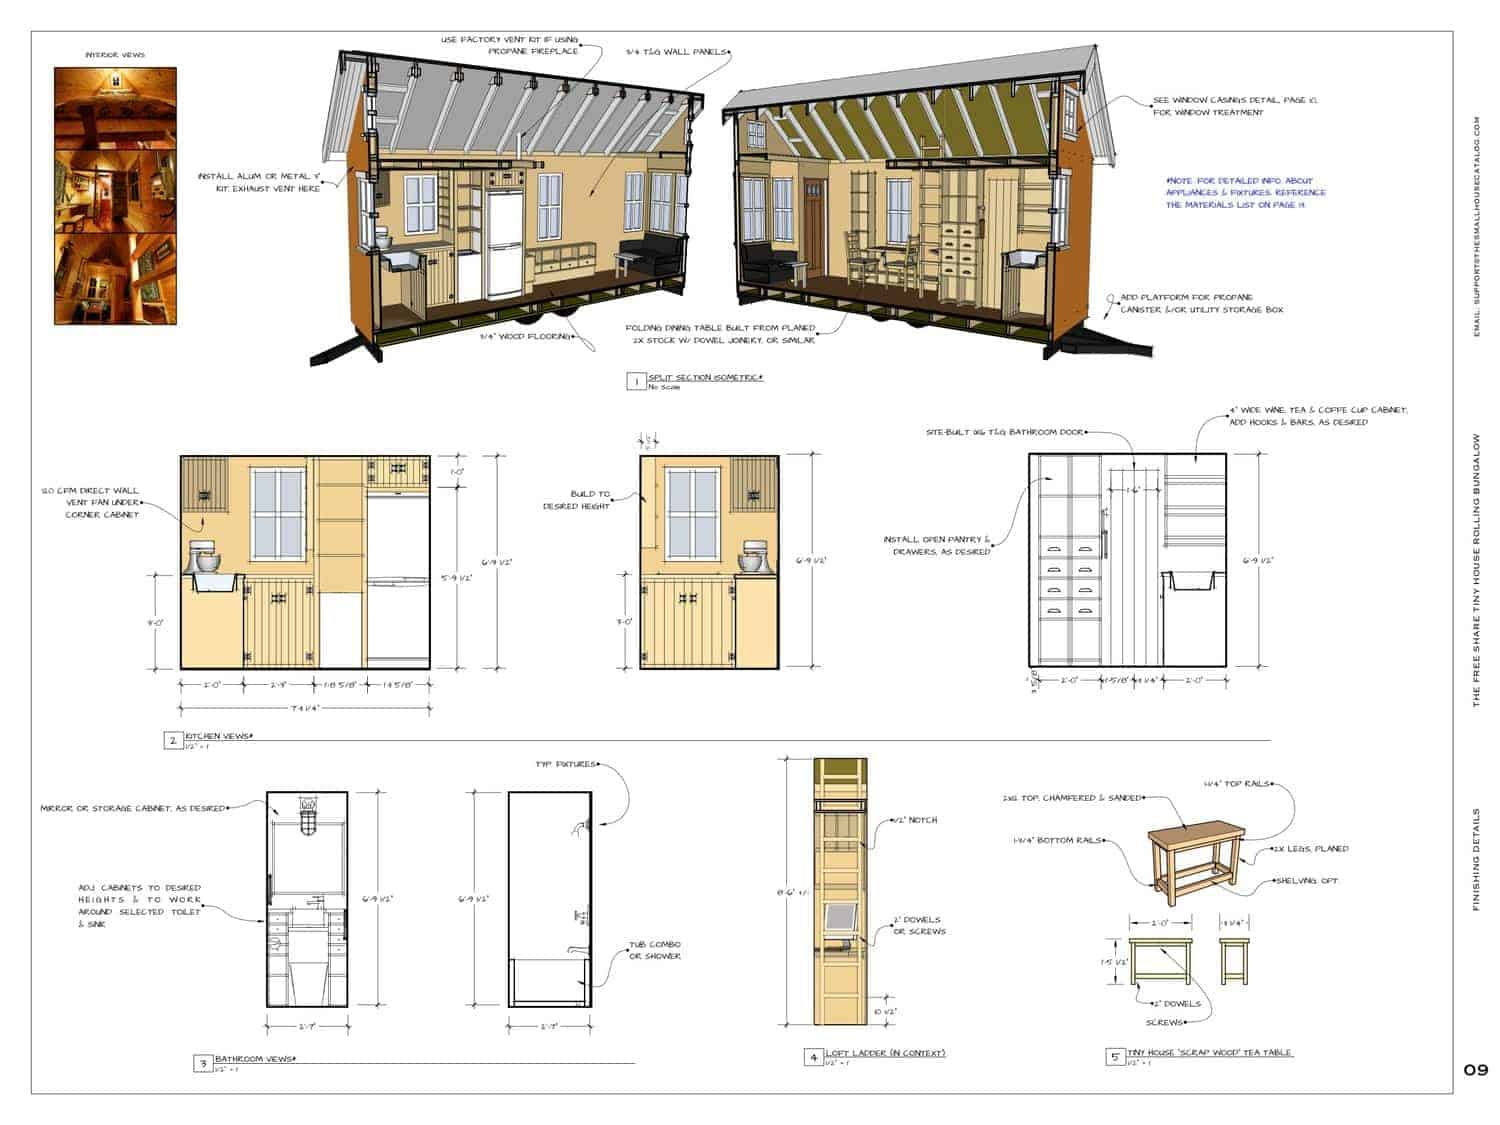 Get free plans to build this adorable tiny bungalow for Purchase house plans